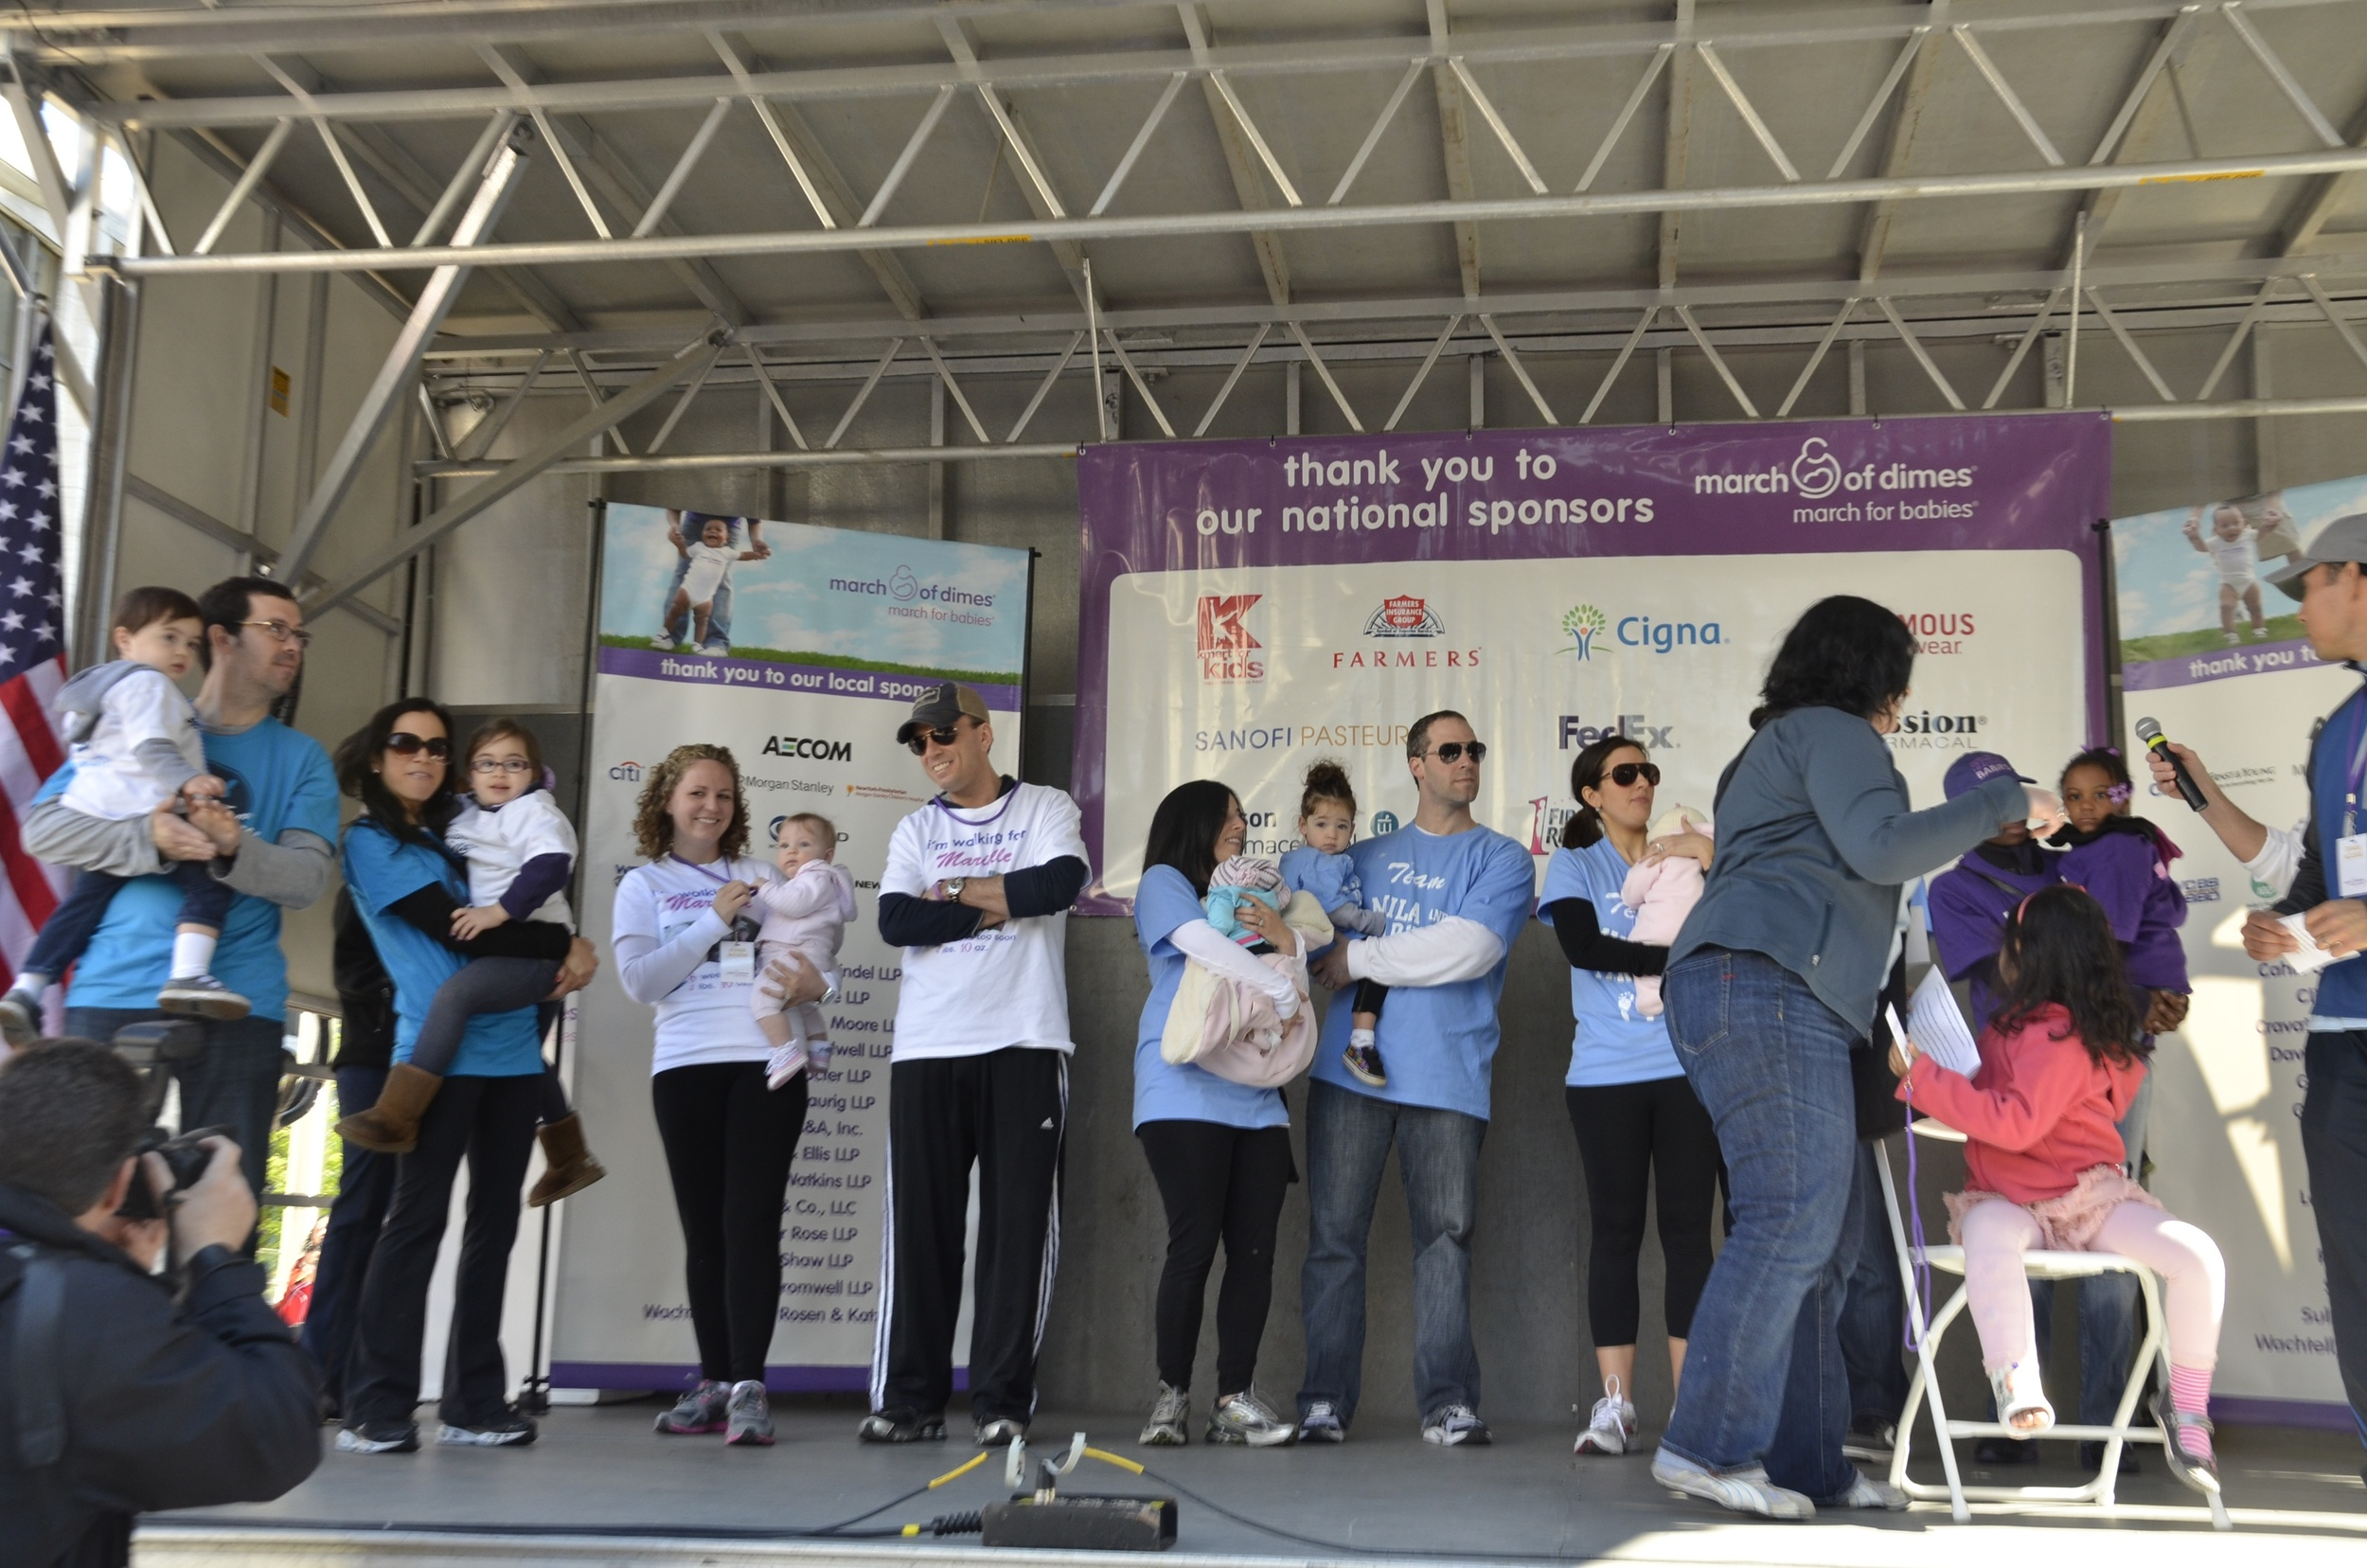 levine-family-on-stage-at-the-2012-march-for-babies-walk_8539153331_o.jpg